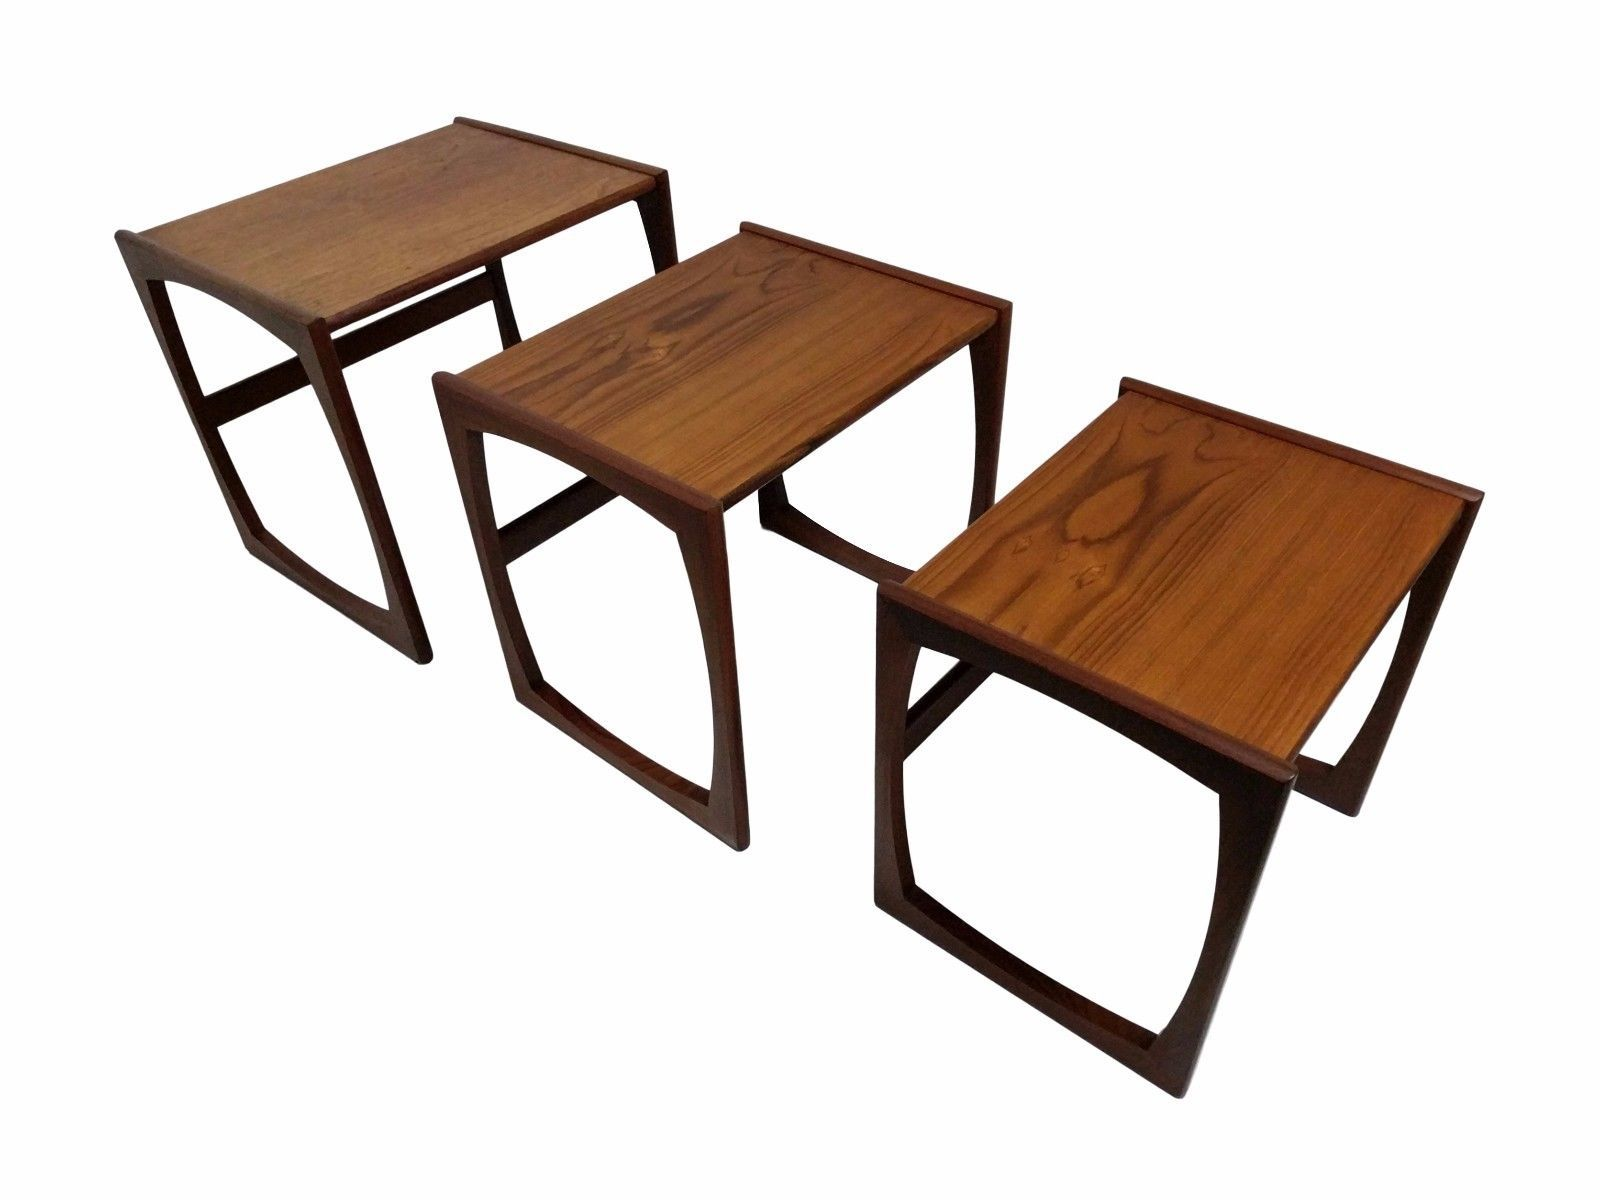 Teak Mid Century Modern Nest of 3 Interlocking Tables, MCM